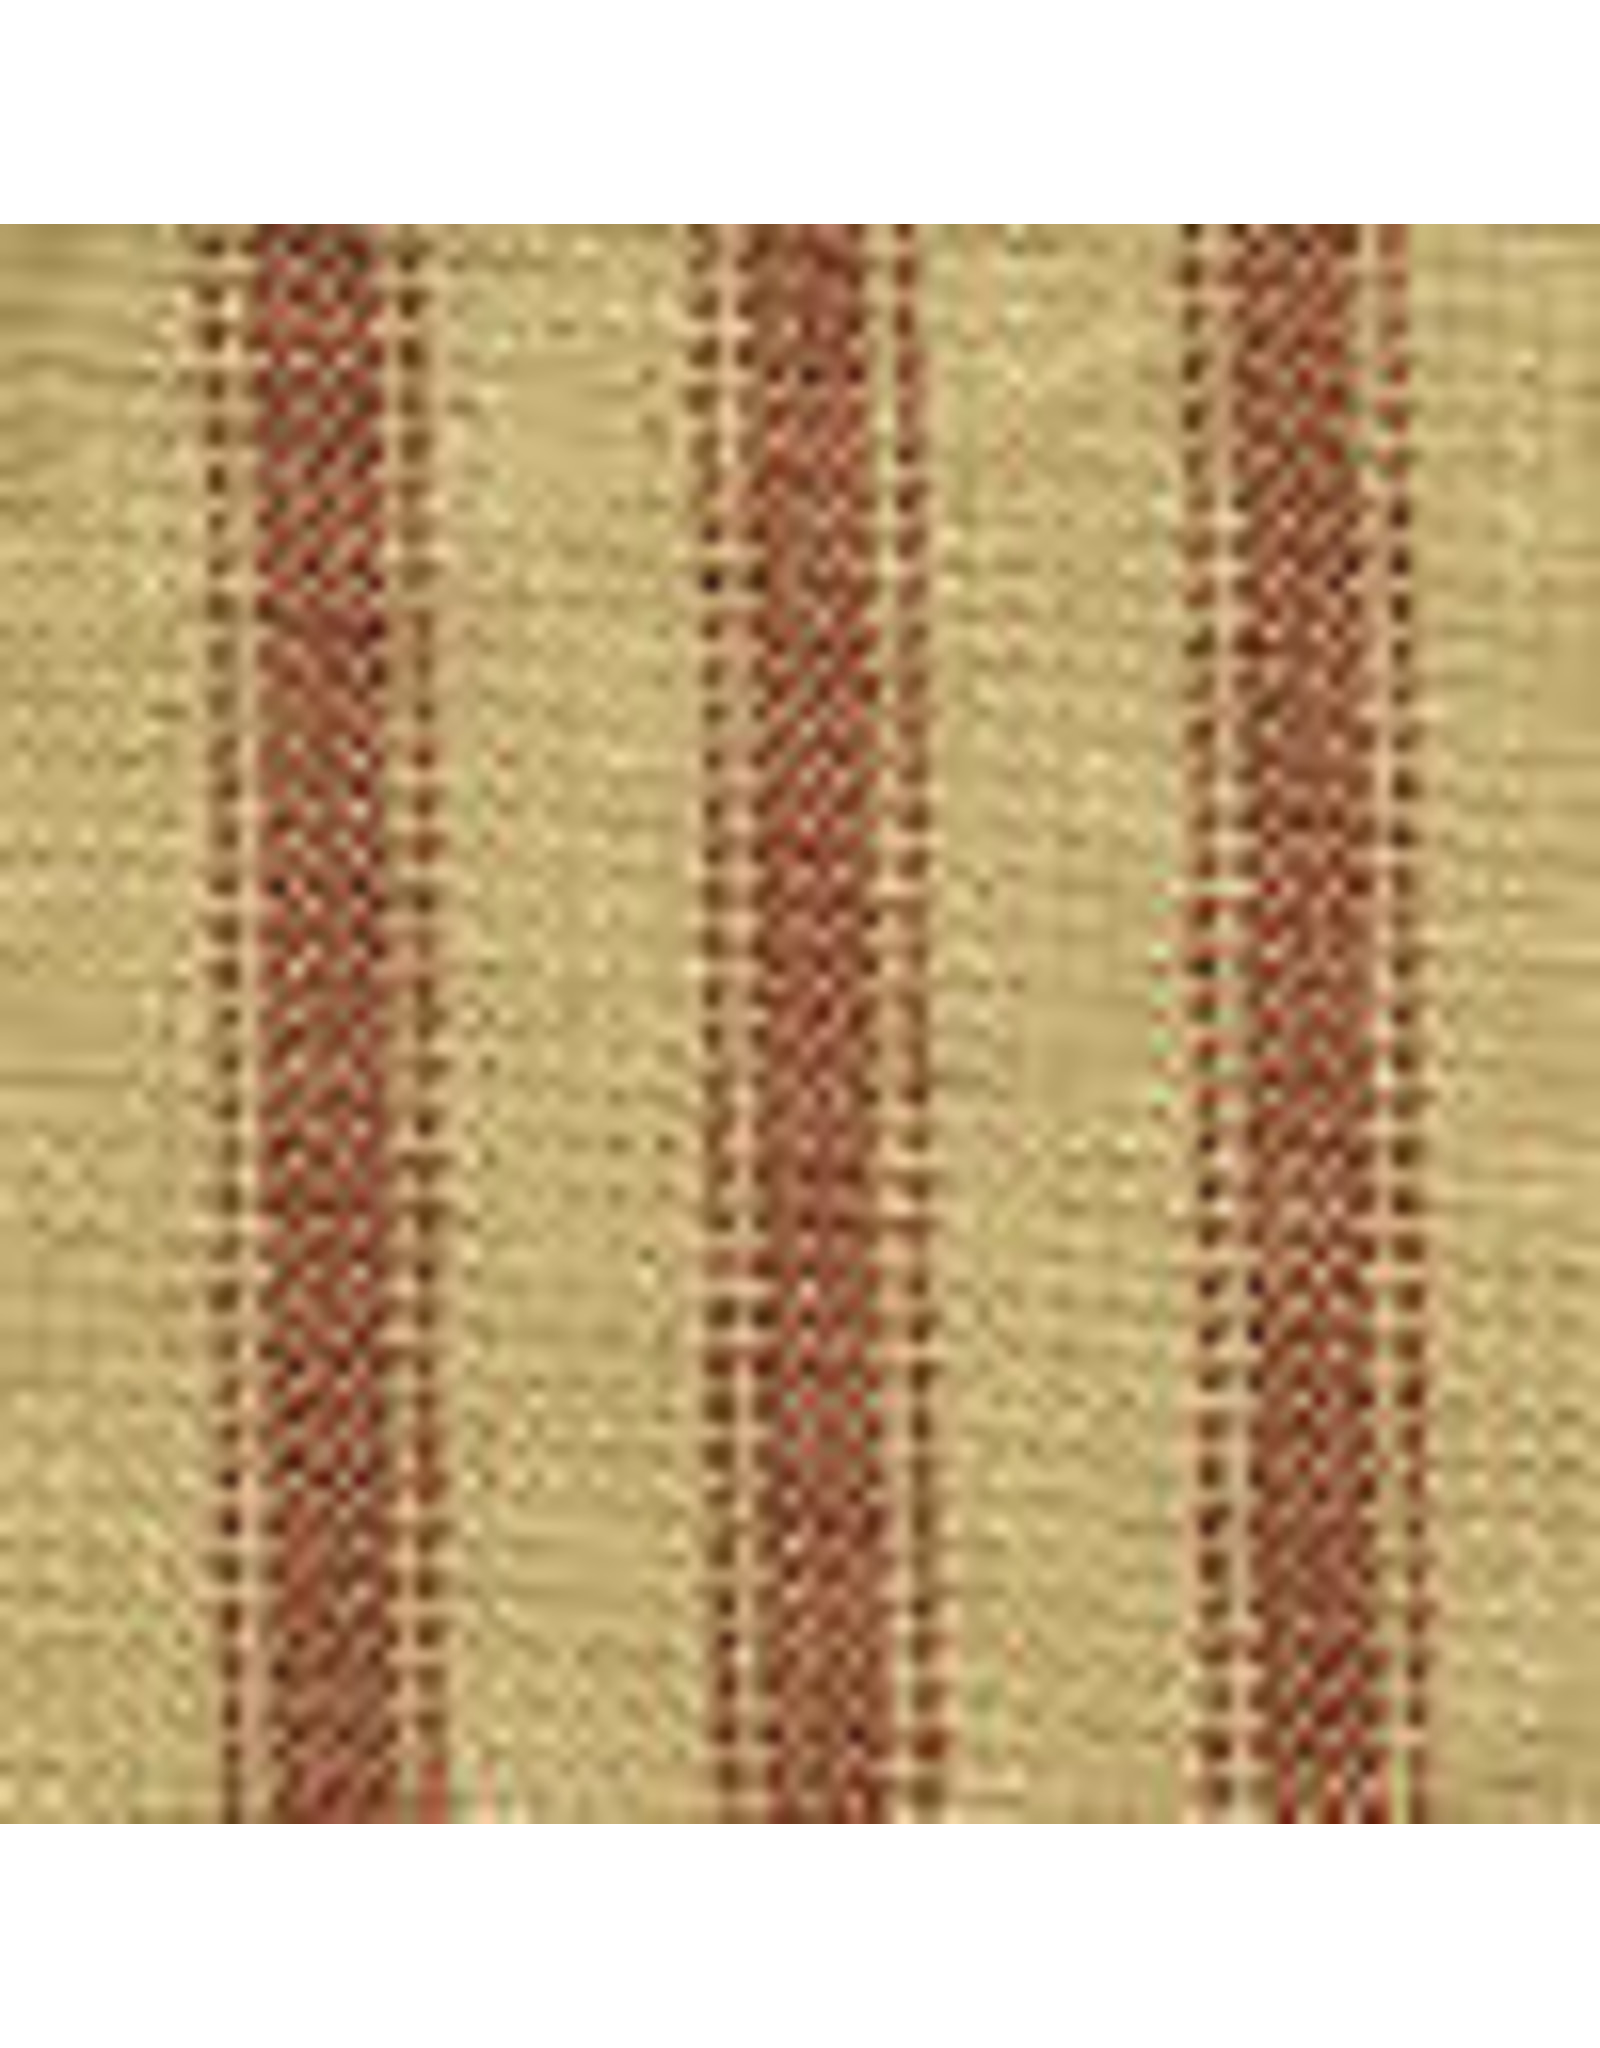 Yd. Red and Tan Ticking Fabric #36